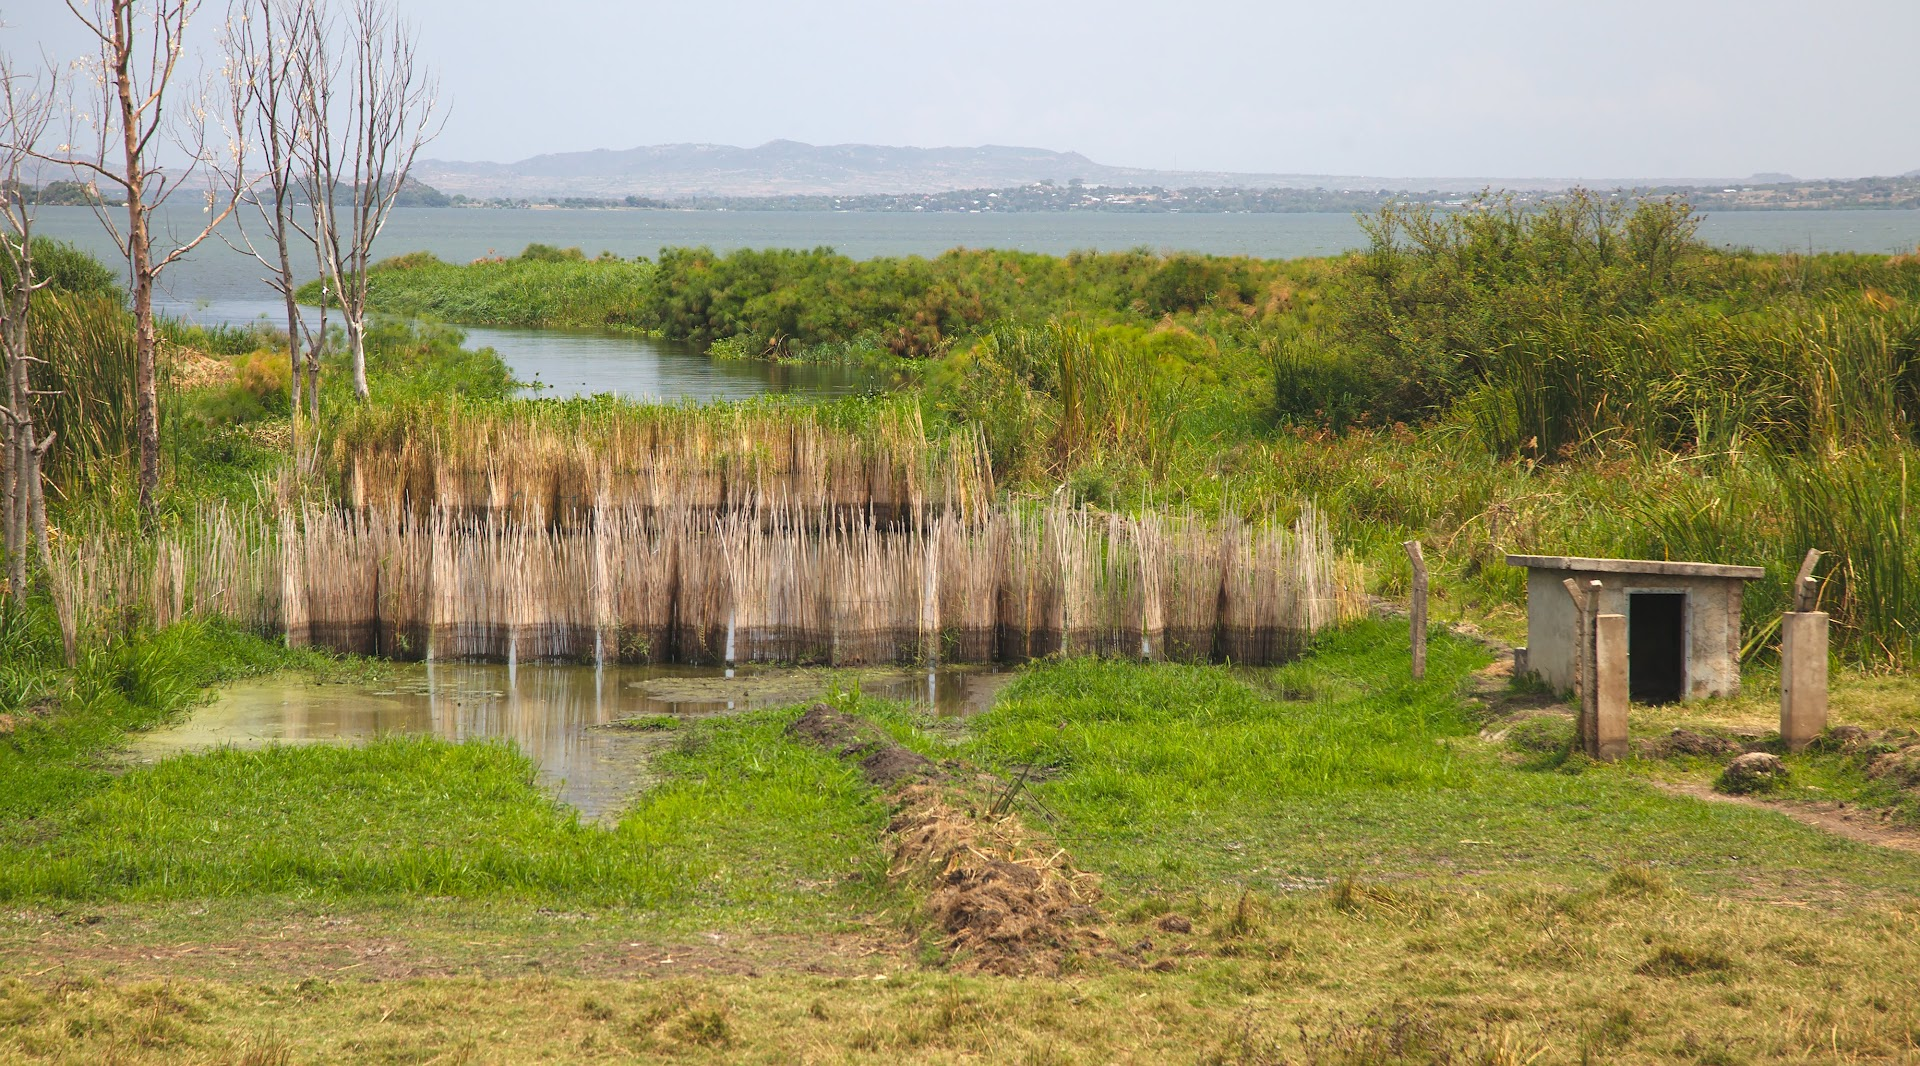 Fishing fence on the Lake Victoria